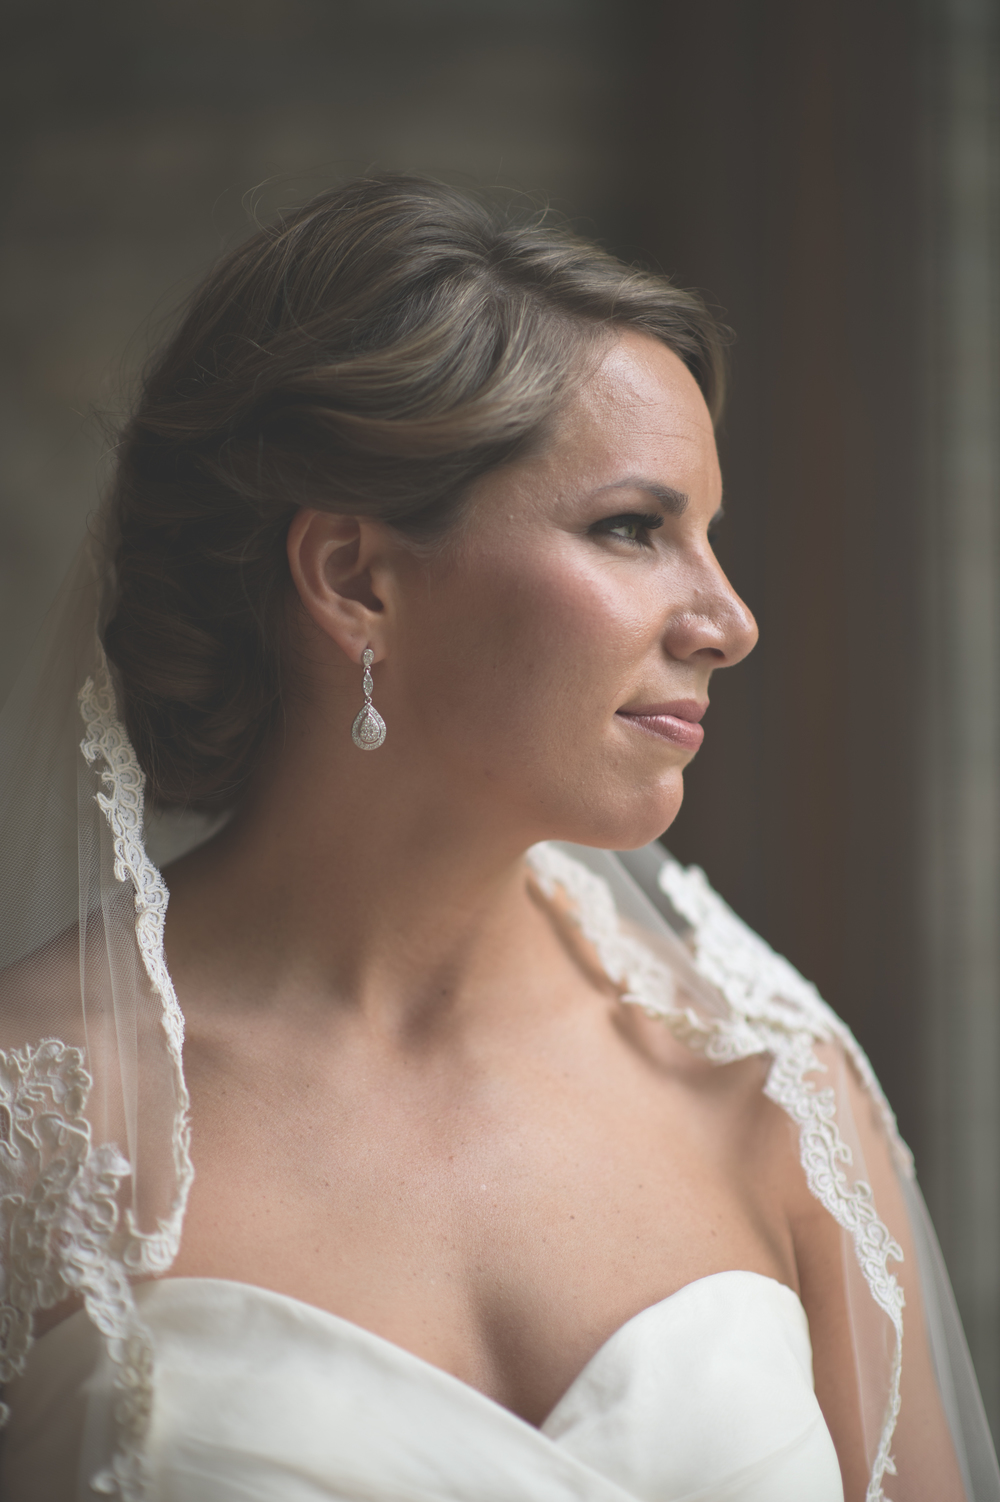 Bride's portrait at The Darby House